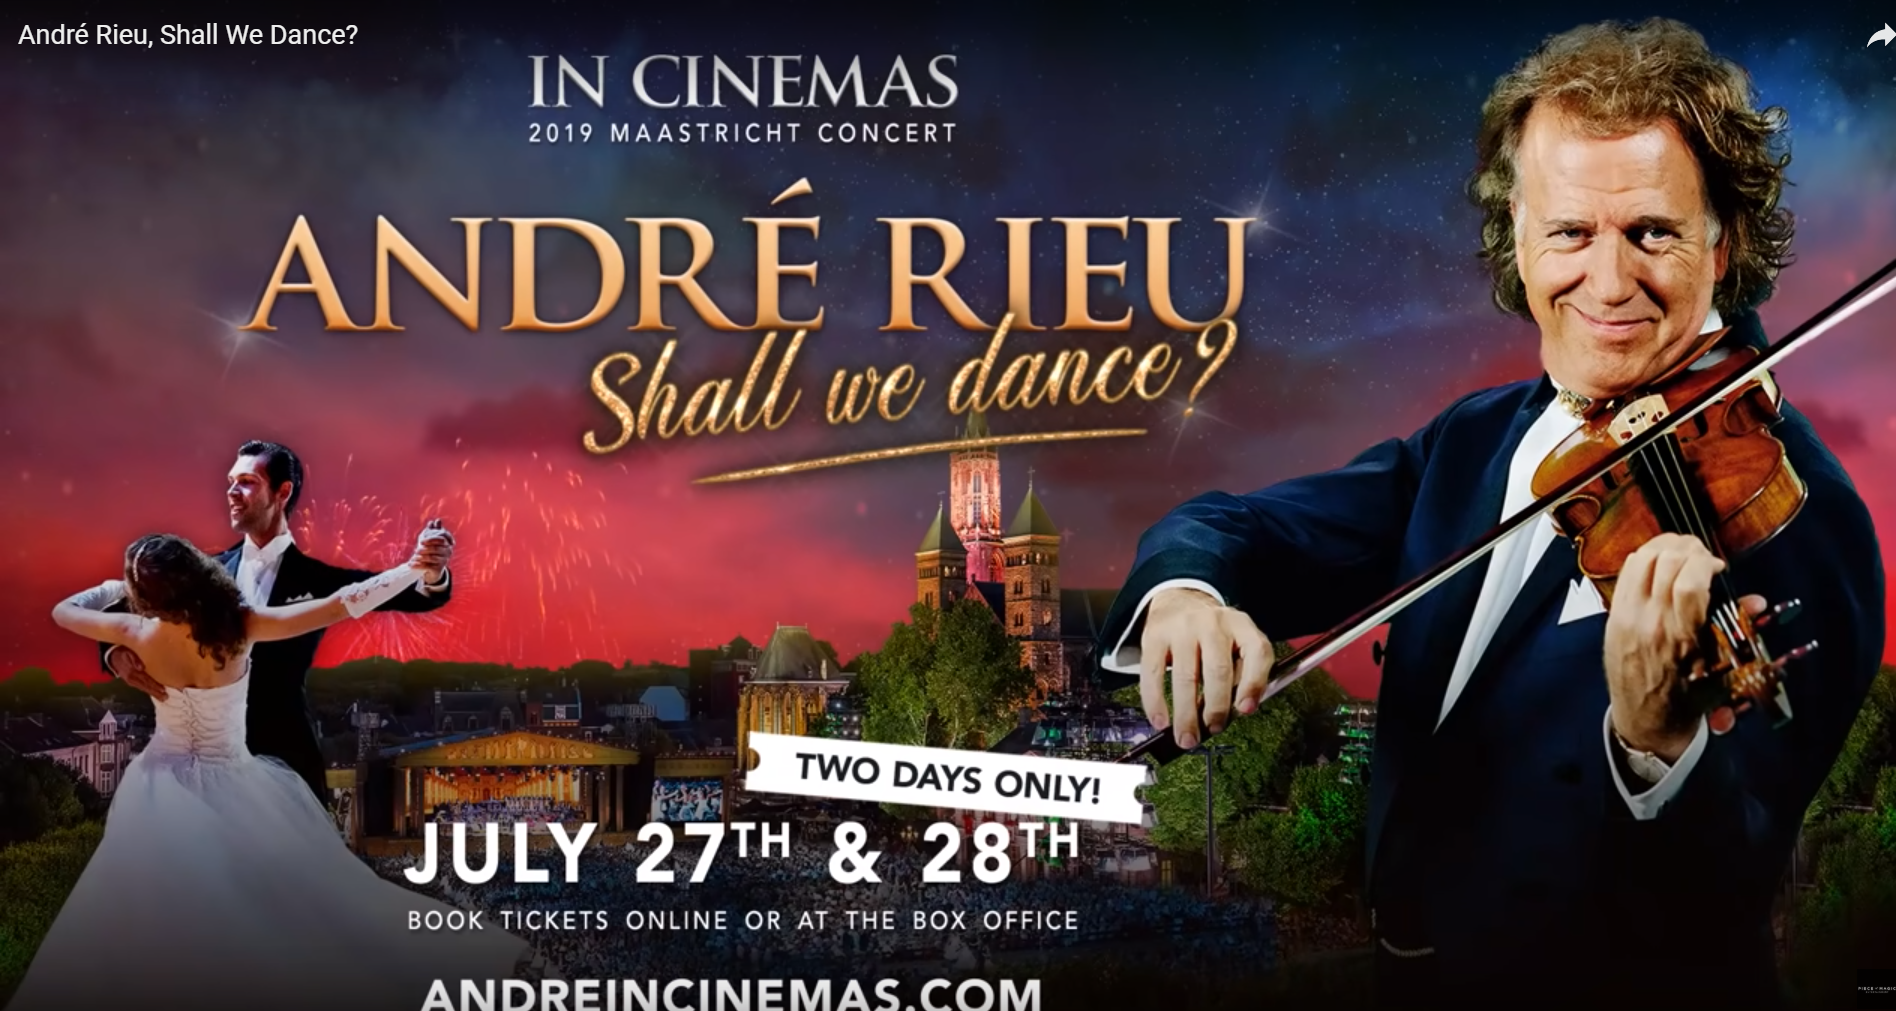 Andre in cinemas: shall we dance?